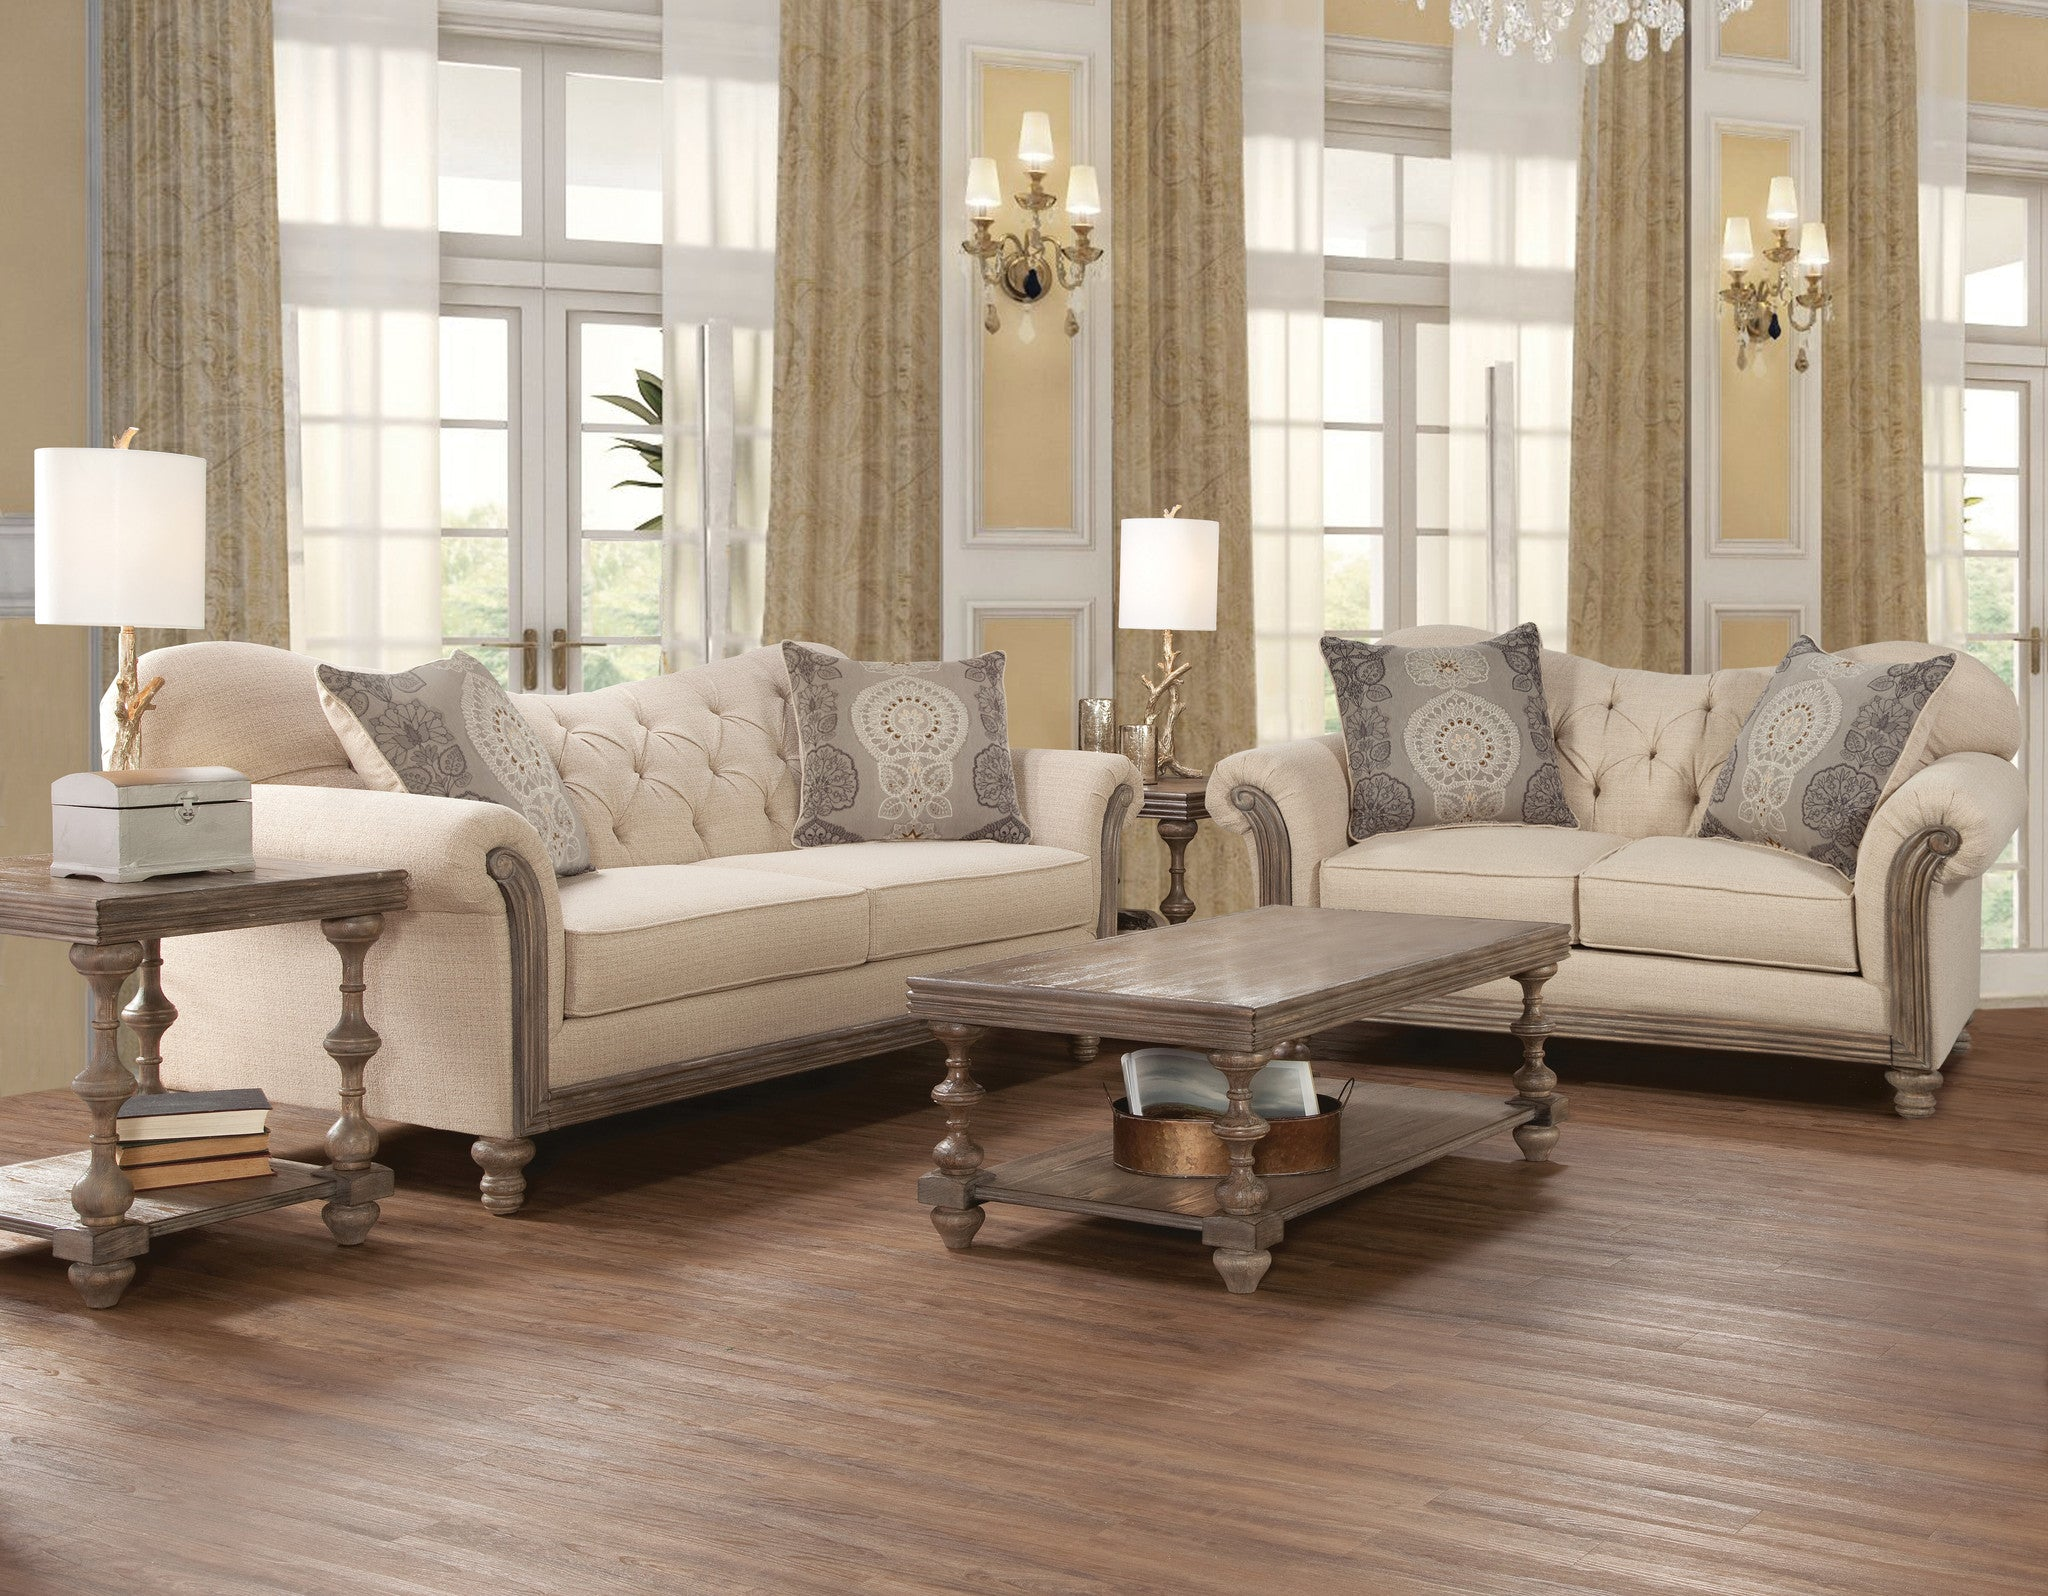 Living Room Furniture Sets Adams Furniture # Muebles Why Not New